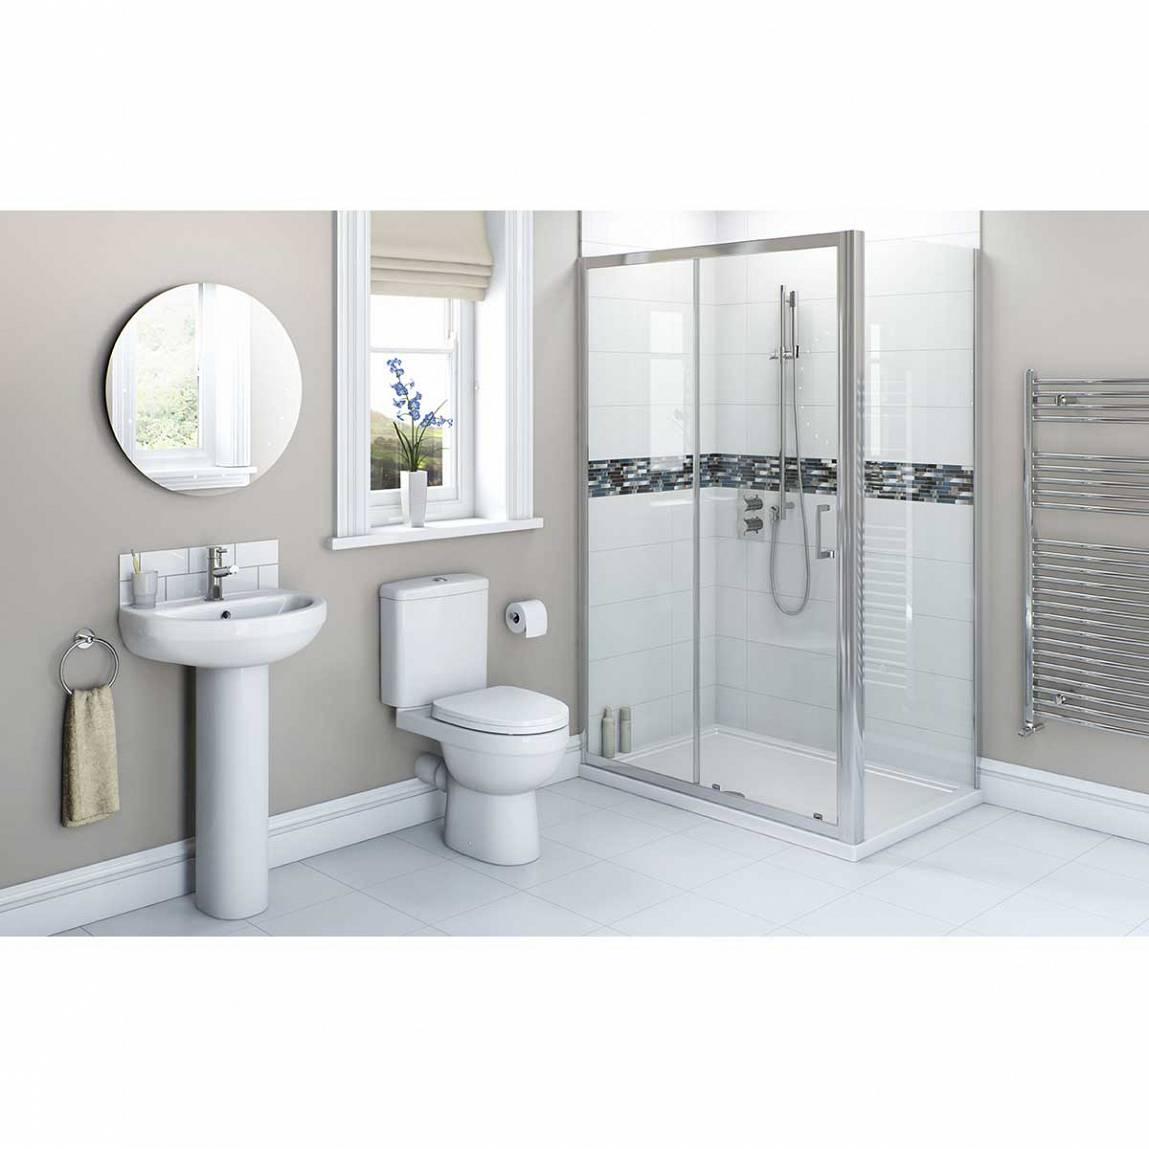 Image of Energy Bathroom set with 1000x900 Sliding Enclosure